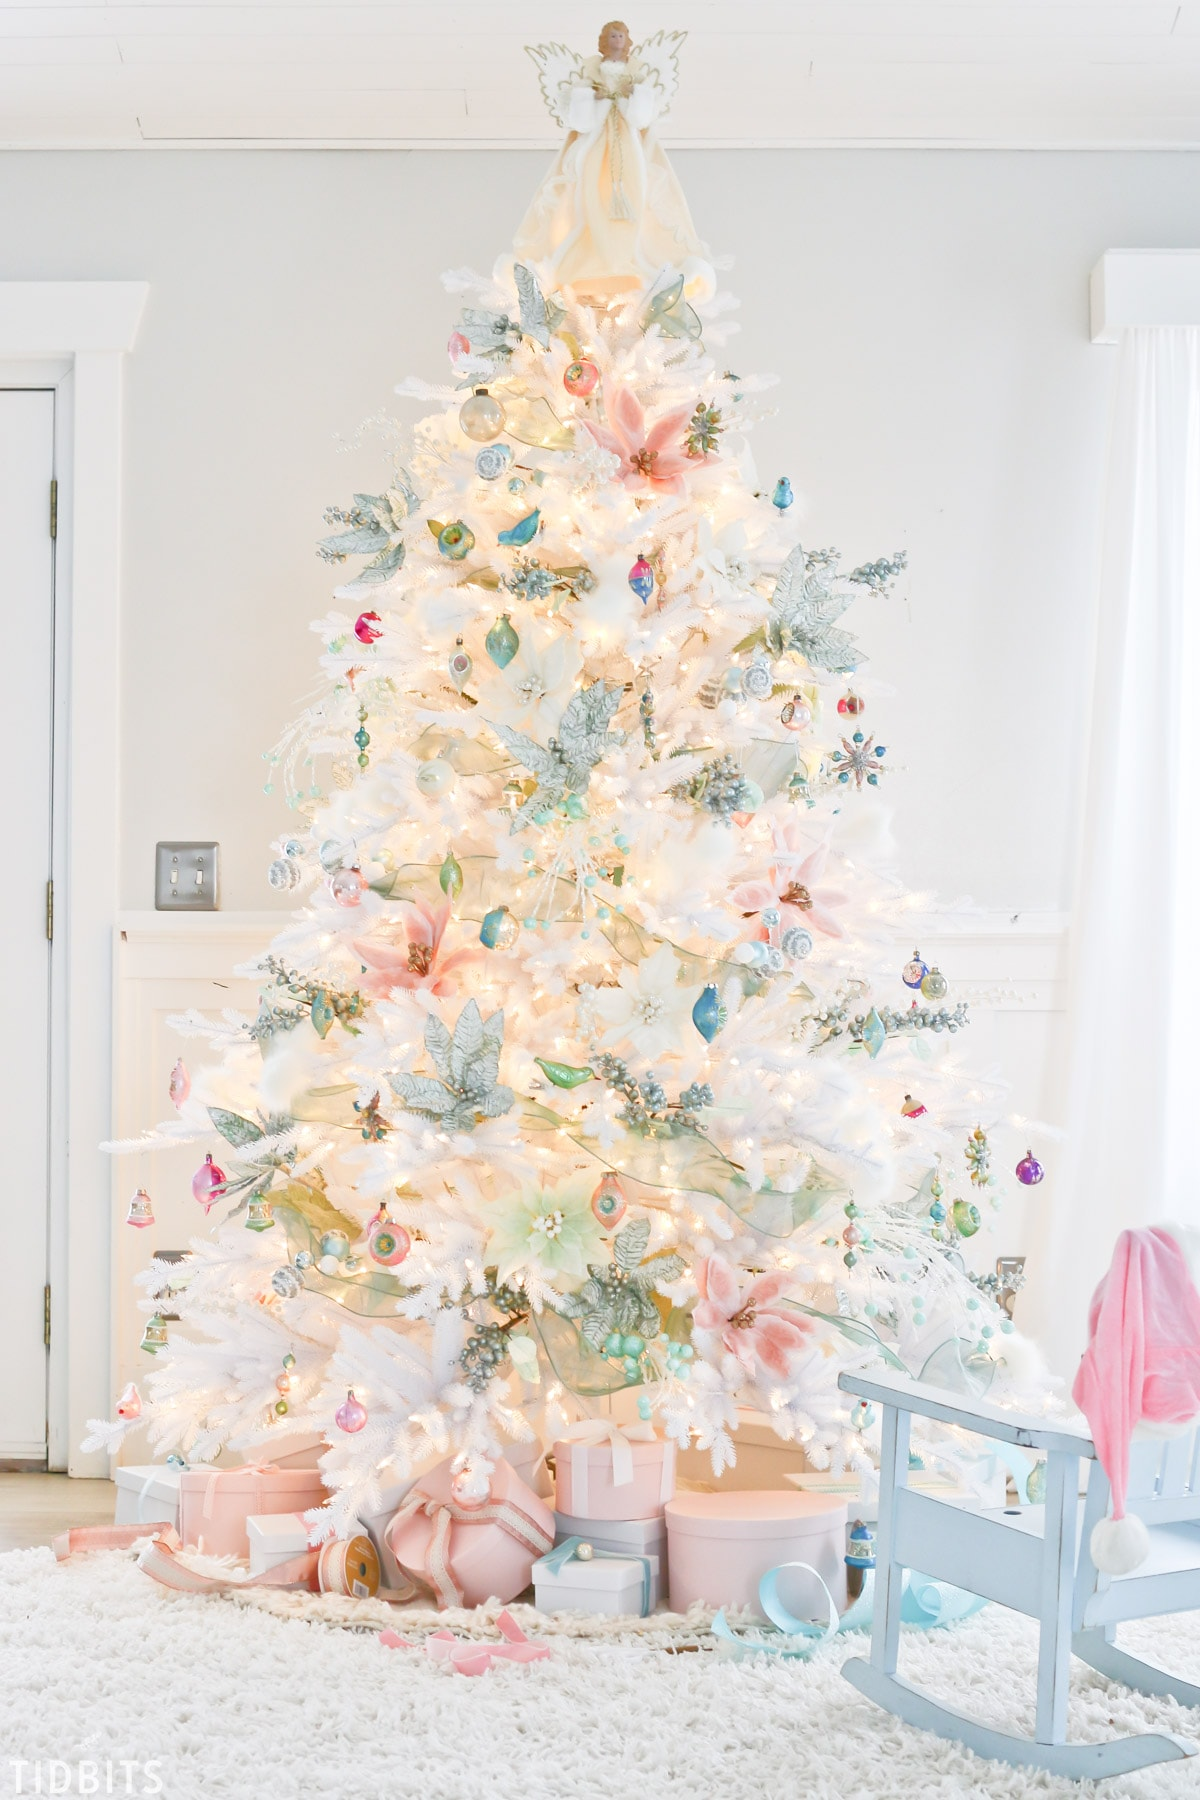 A-Colorful-Christmas-Home-Tour-TIDBITS-8